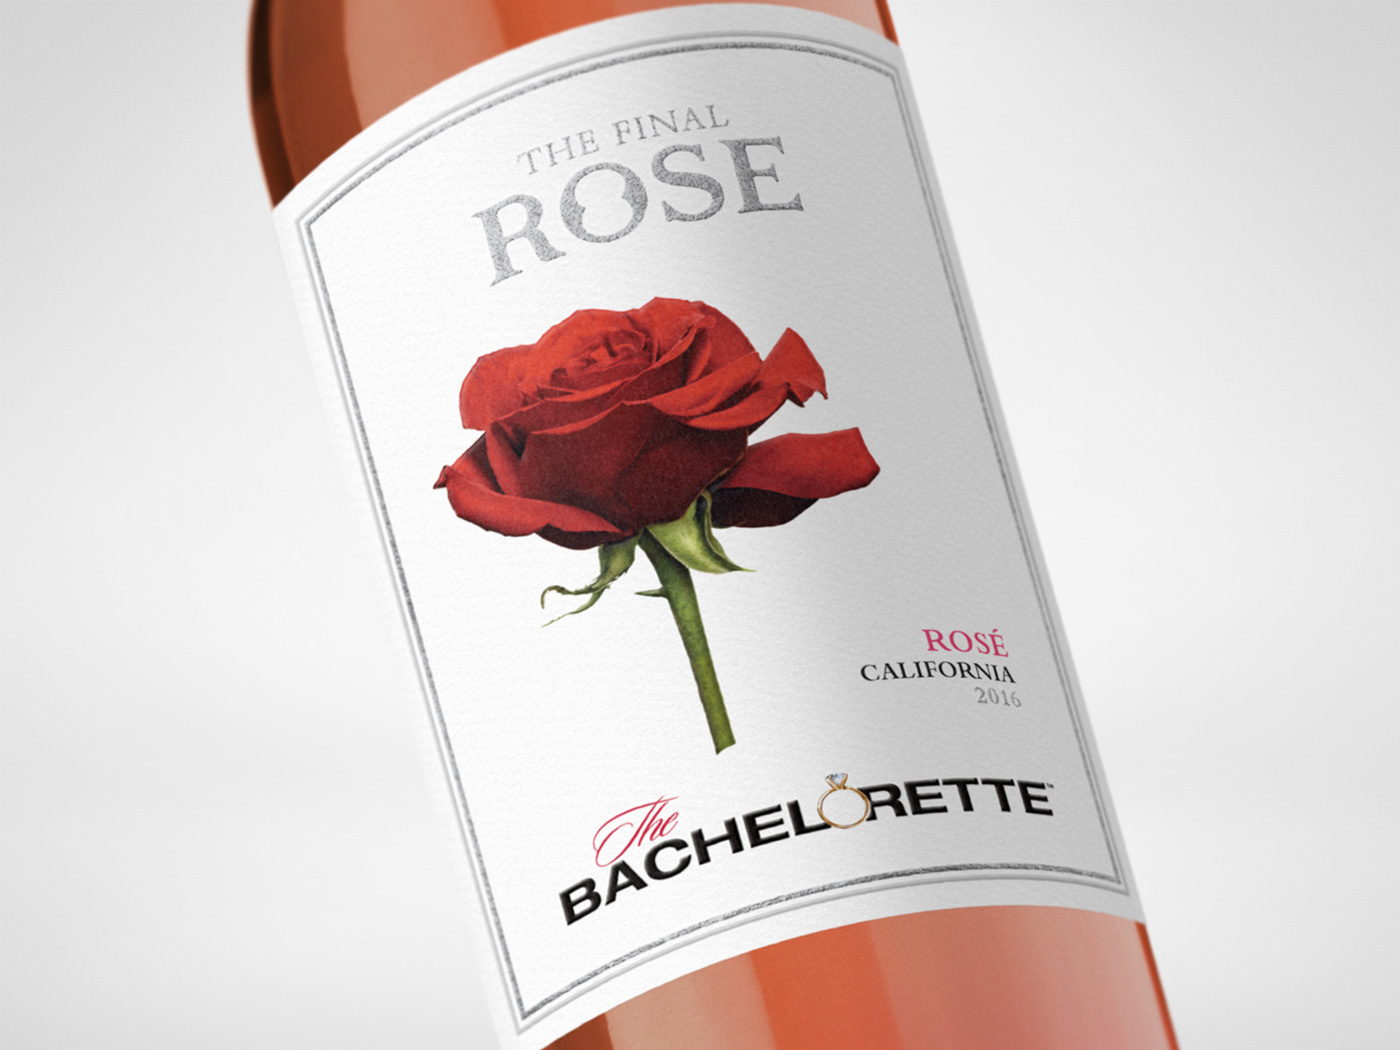 Bachelor Wines - The Final Rose Closeup